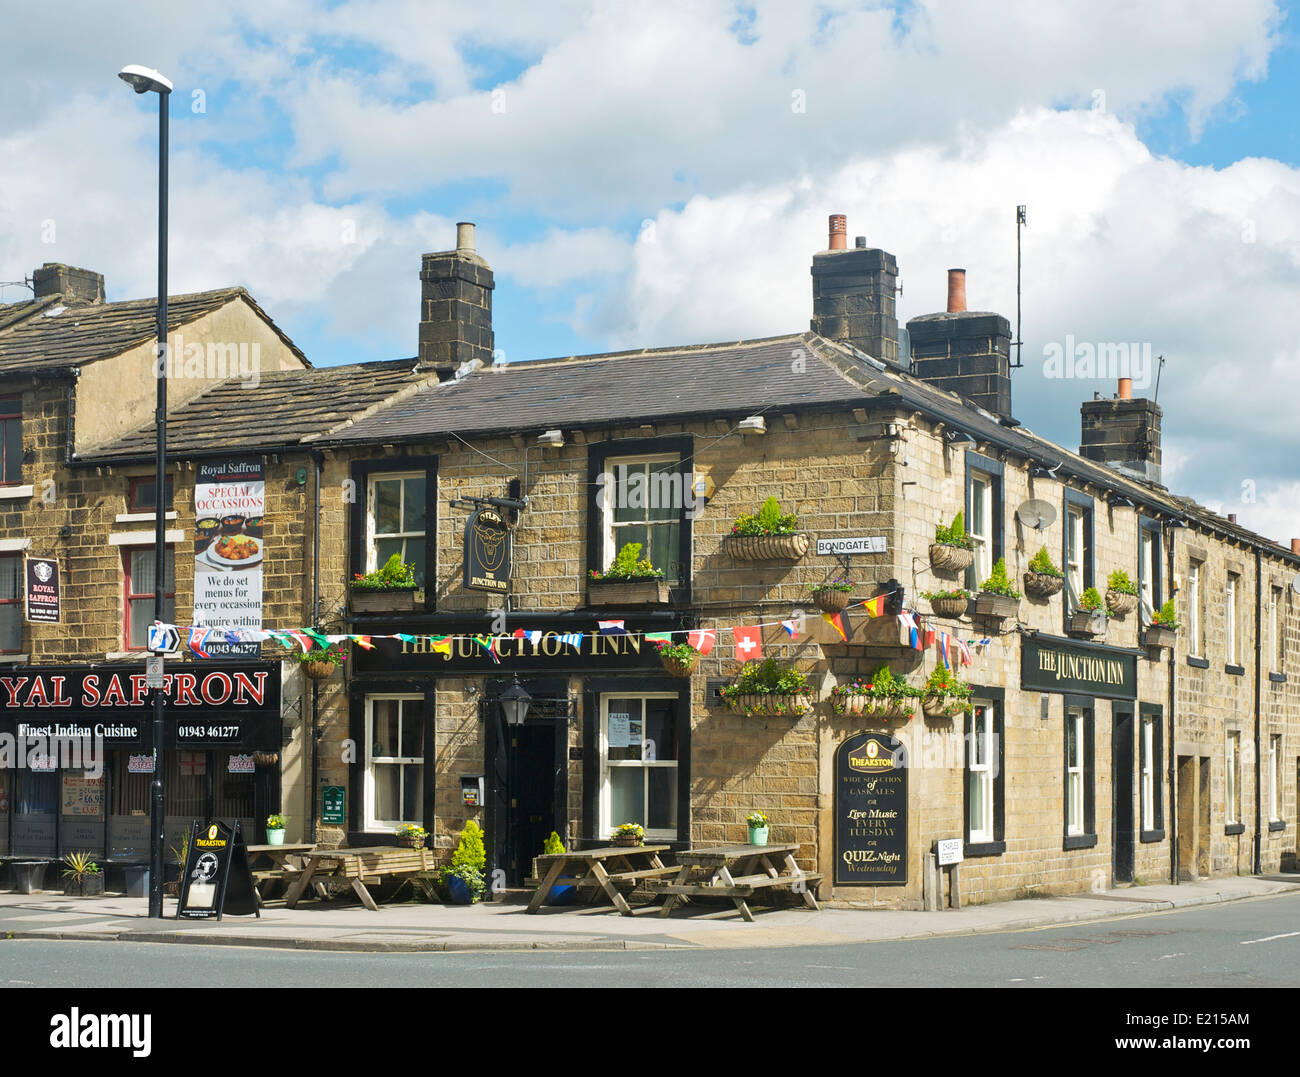 The Junction pub in Otley, West Yorkshire, England UK - Stock Image